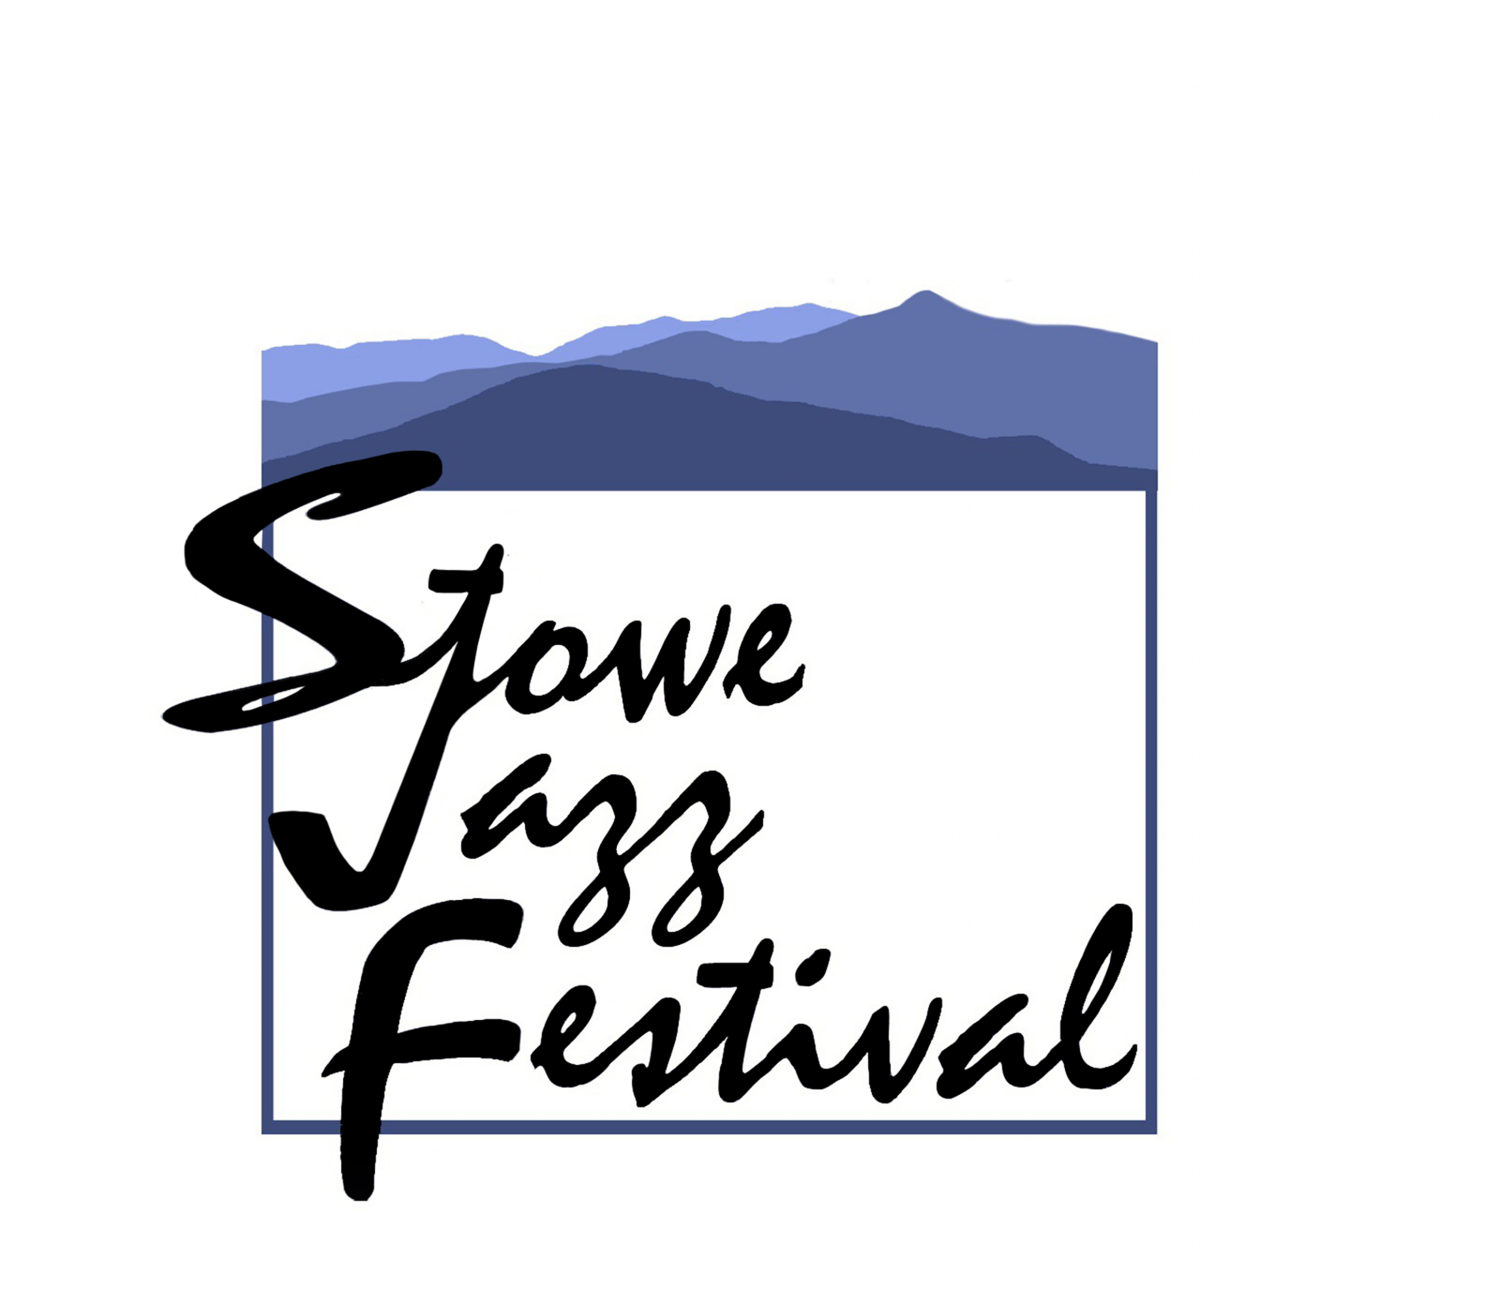 The Stowe Jazz Festival